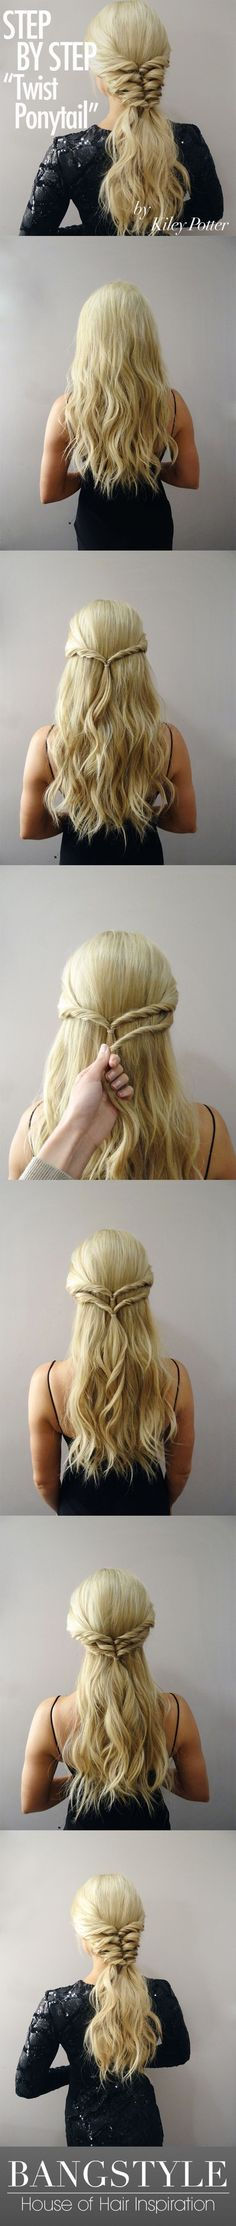 20 Gorgeous Braided